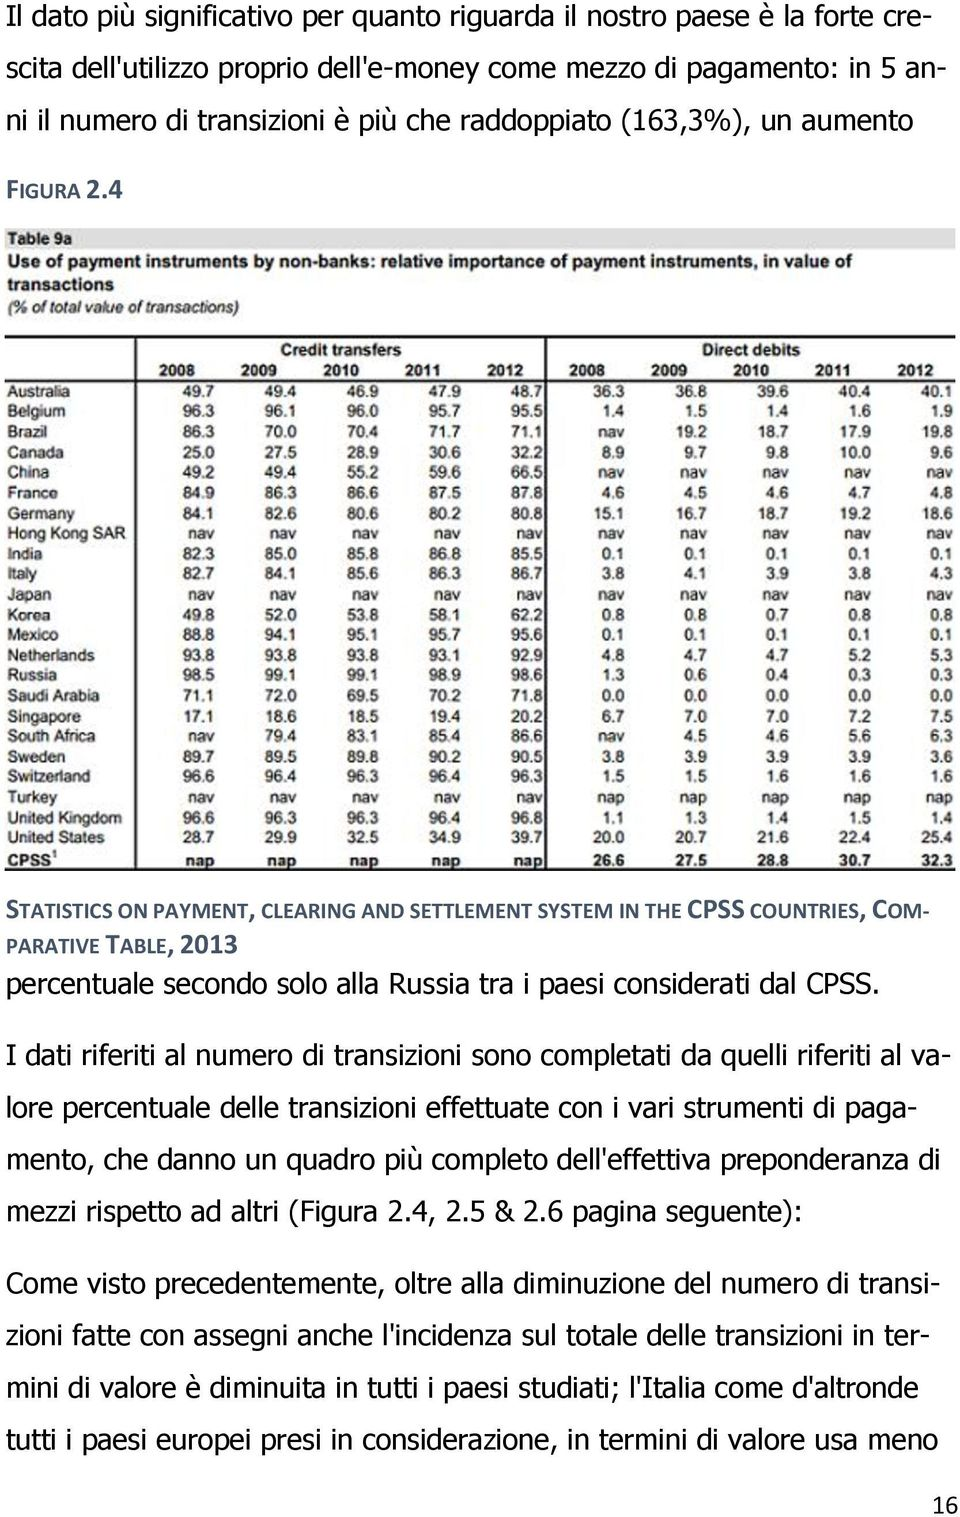 4 STATISTICS ON PAYMENT, CLEARING AND SETTLEMENT SYSTEM IN THE CPSS COUNTRIES, COM- PARATIVE TABLE, 2013 percentuale secondo solo alla Russia tra i paesi considerati dal CPSS.